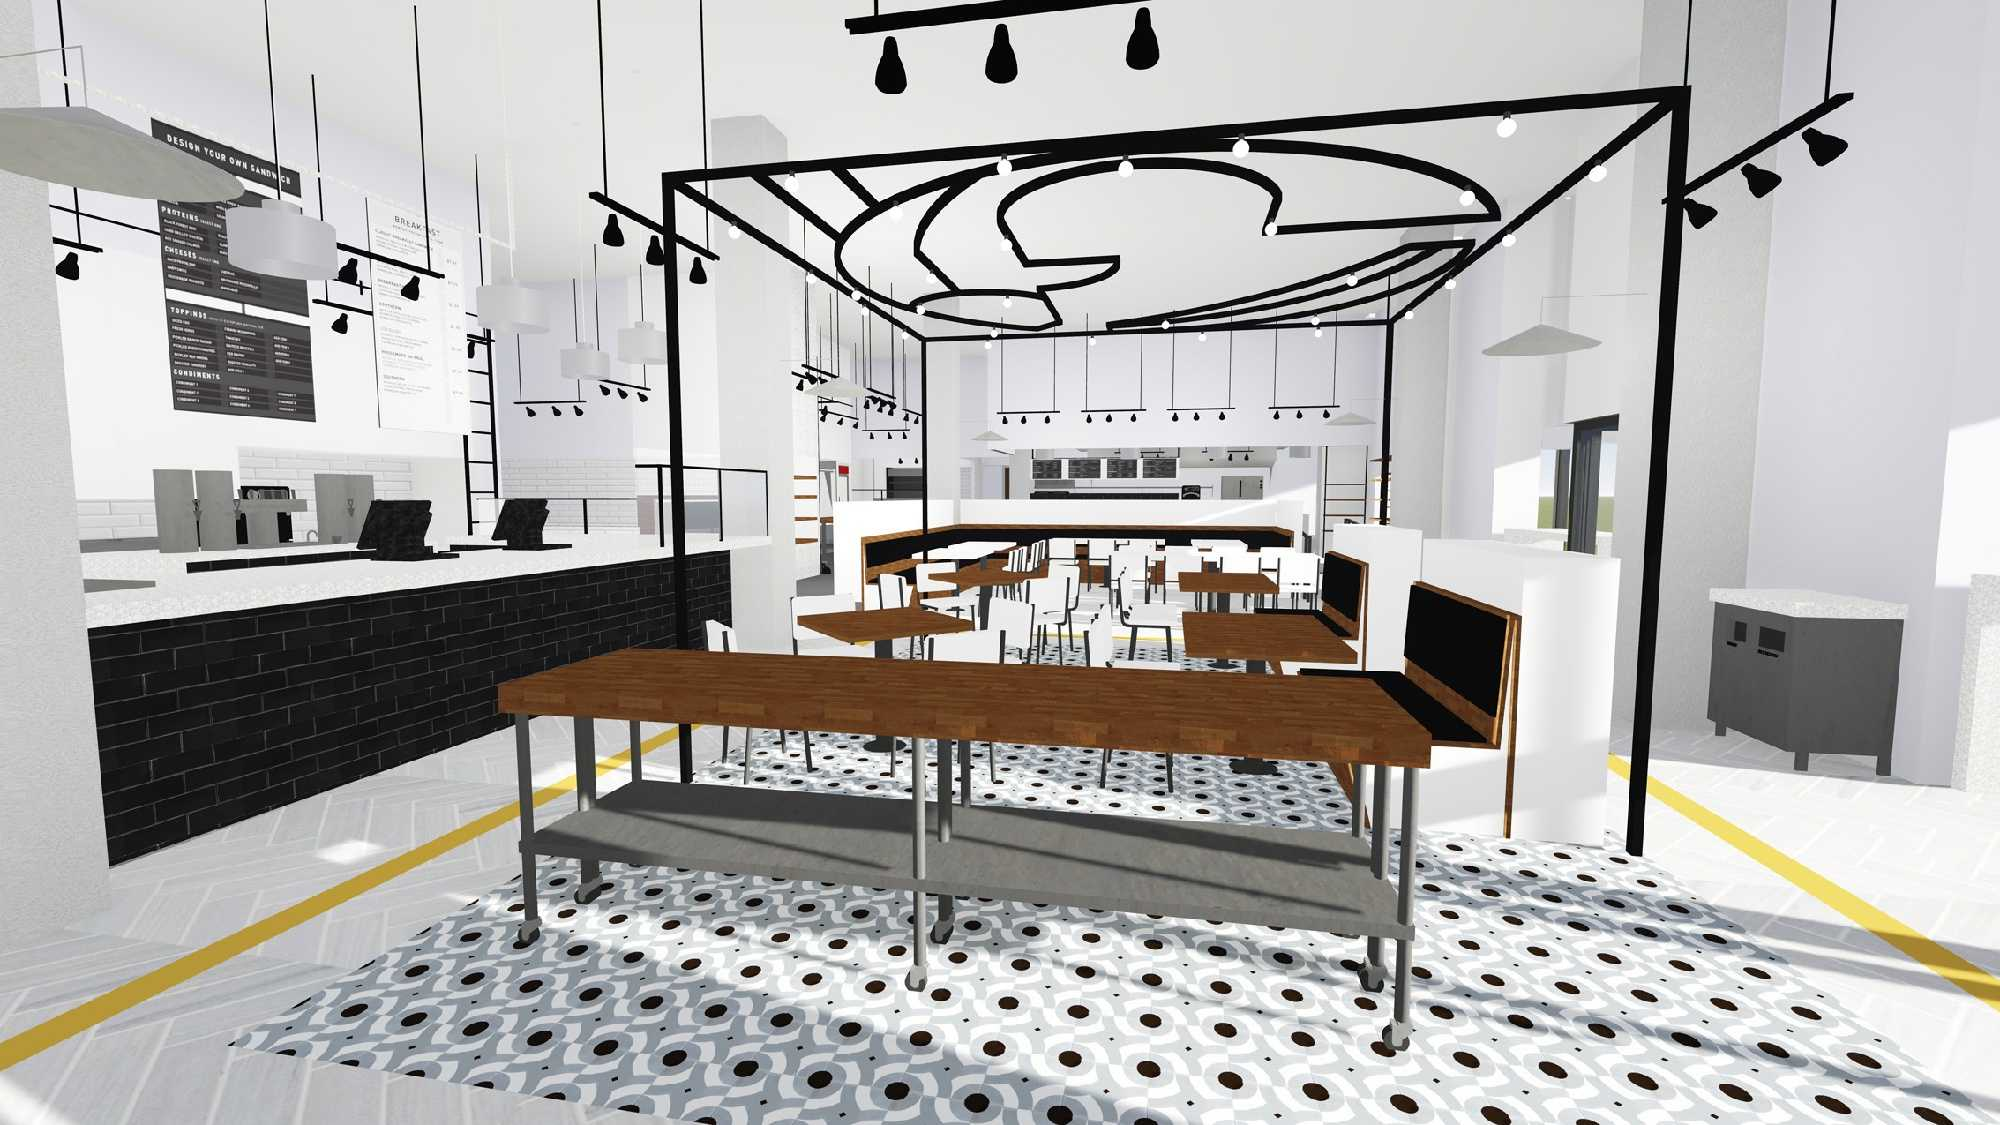 Rendering of the front bar of the Caviar & Bananas that will open in Greenville on Aug. 5.